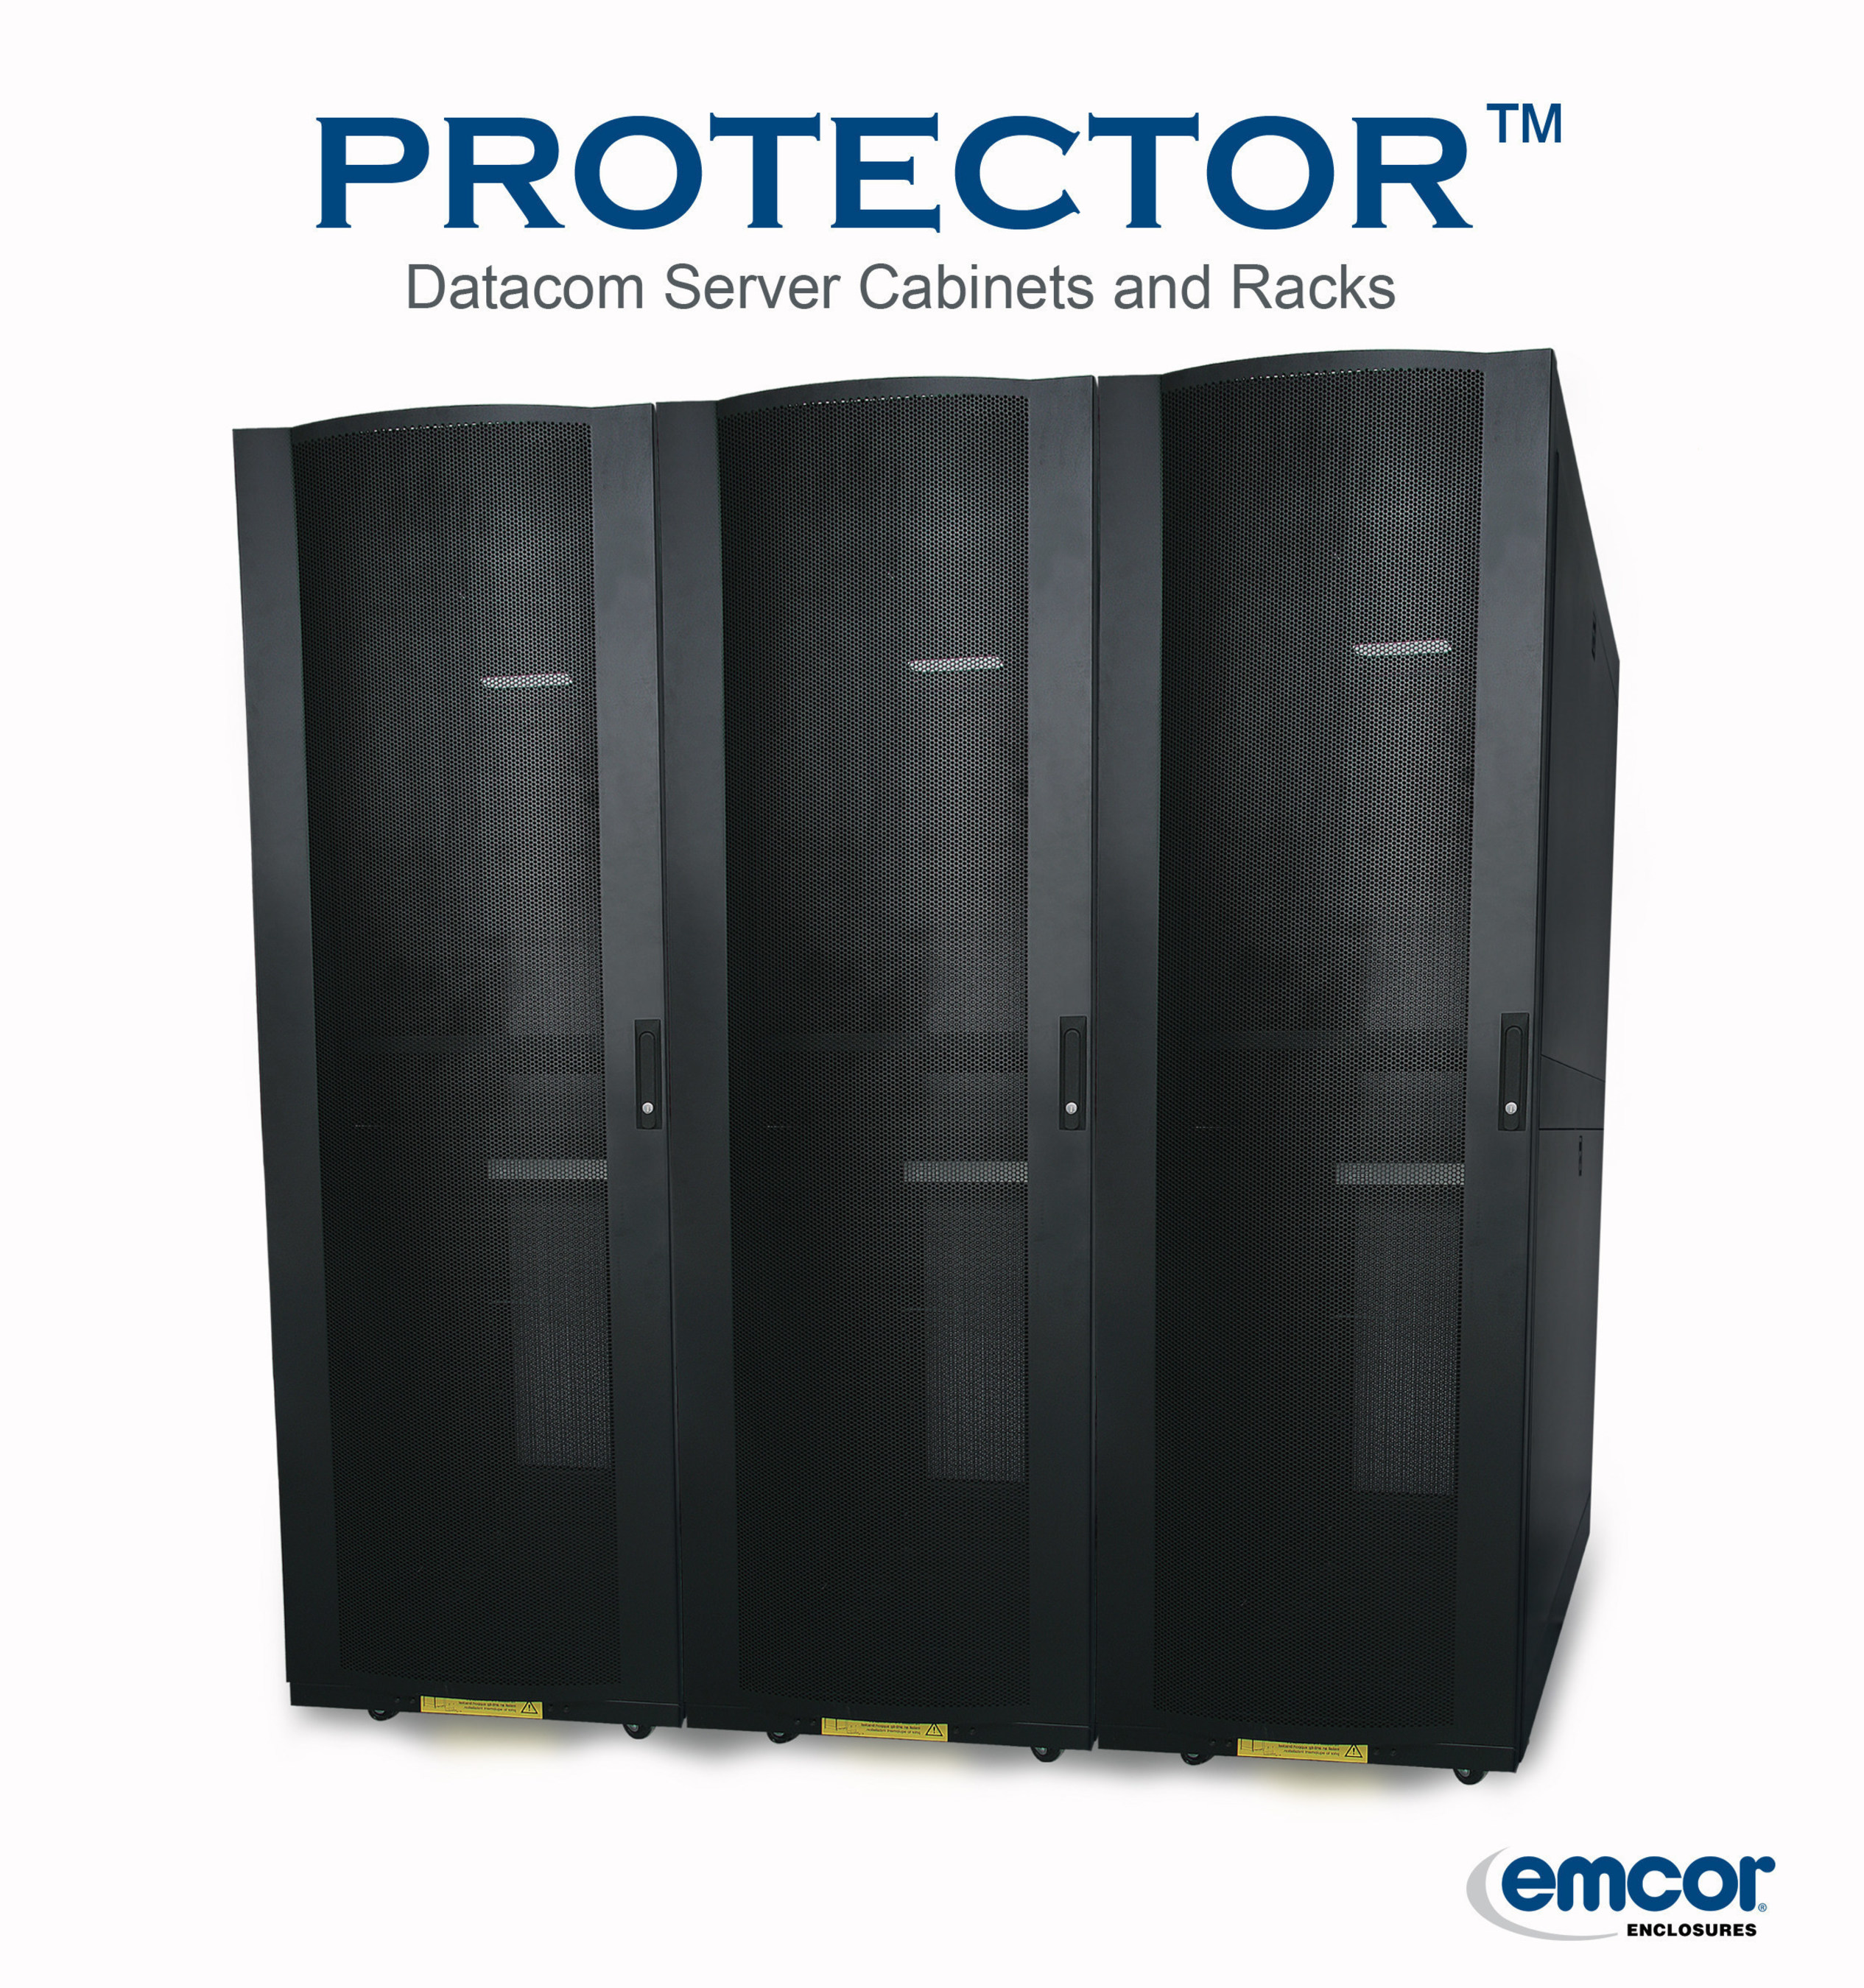 Emcor's New Protector™ Series Datacom Server Cabinets Featured at 2016 BICSI Winter Conference